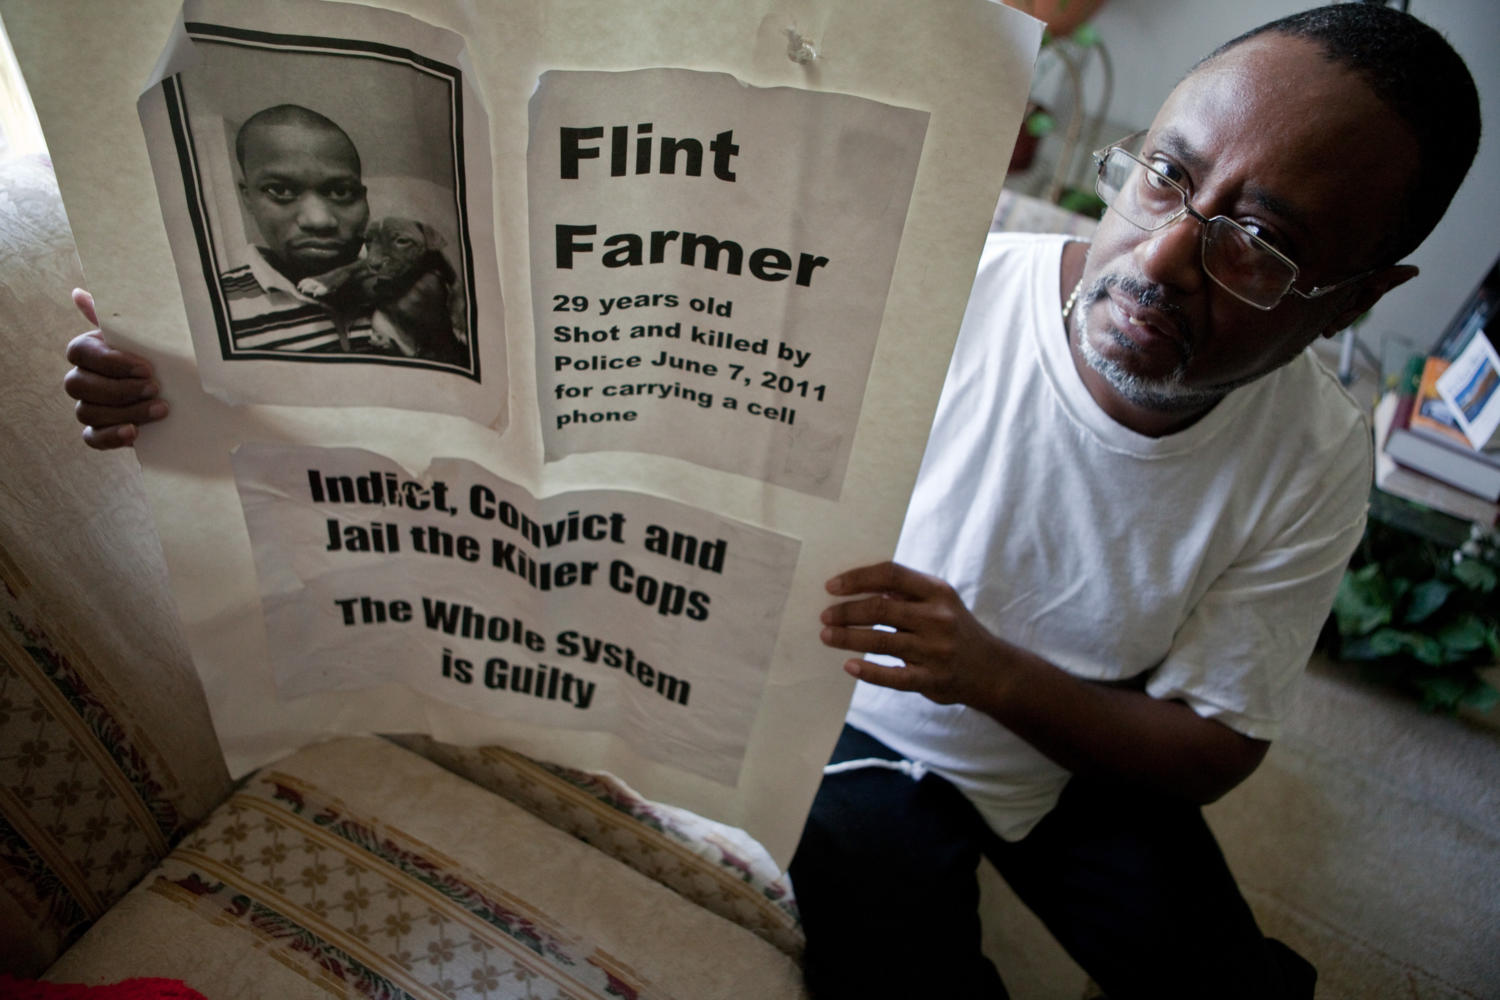 Emmett+Farmer%2C+51%2C+father+of+Flint+Farmer%2C+poses+for+portrait+with+a+poster+at+his+home+in+Sauk+Village%2C+Illinois%2C+October+21%2C+2011.+Flint+Farmer%2C+29%2C+was+unarmed+when+he+was+shot+and+killed+by+a+police+officer+in+June.+%28Zbigniew+Bzdak%2FChicago+Tribune%2FMCT%29